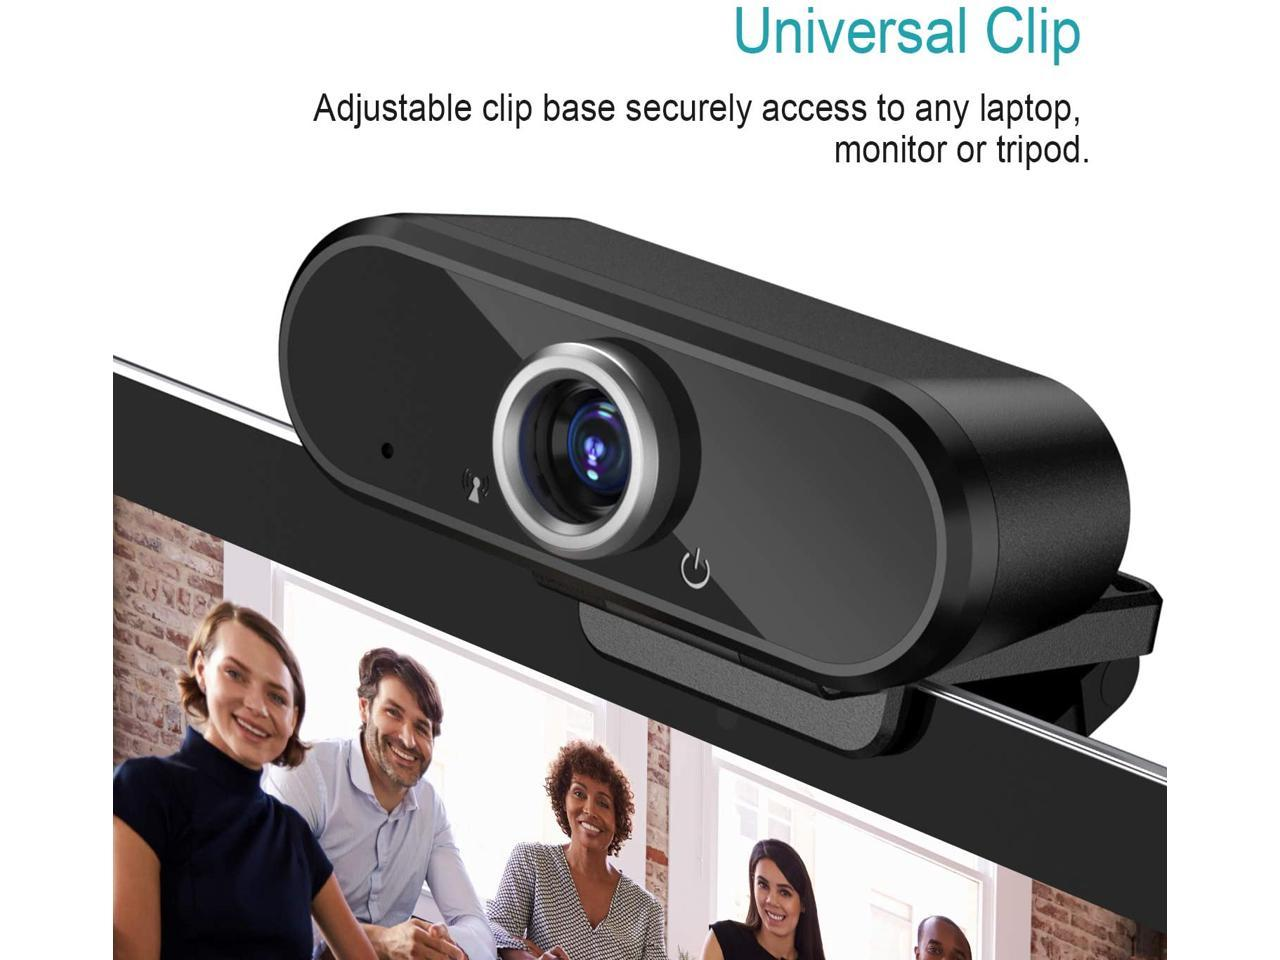 Recording FHD Live Streaming Camera 90/° Wide Angle Lens /& Rotatable Base for Video Calling ieGeek 1080P Webcam with Microphone Conferencing USB Webcam w//Mic for Computer PC Desktop Laptop